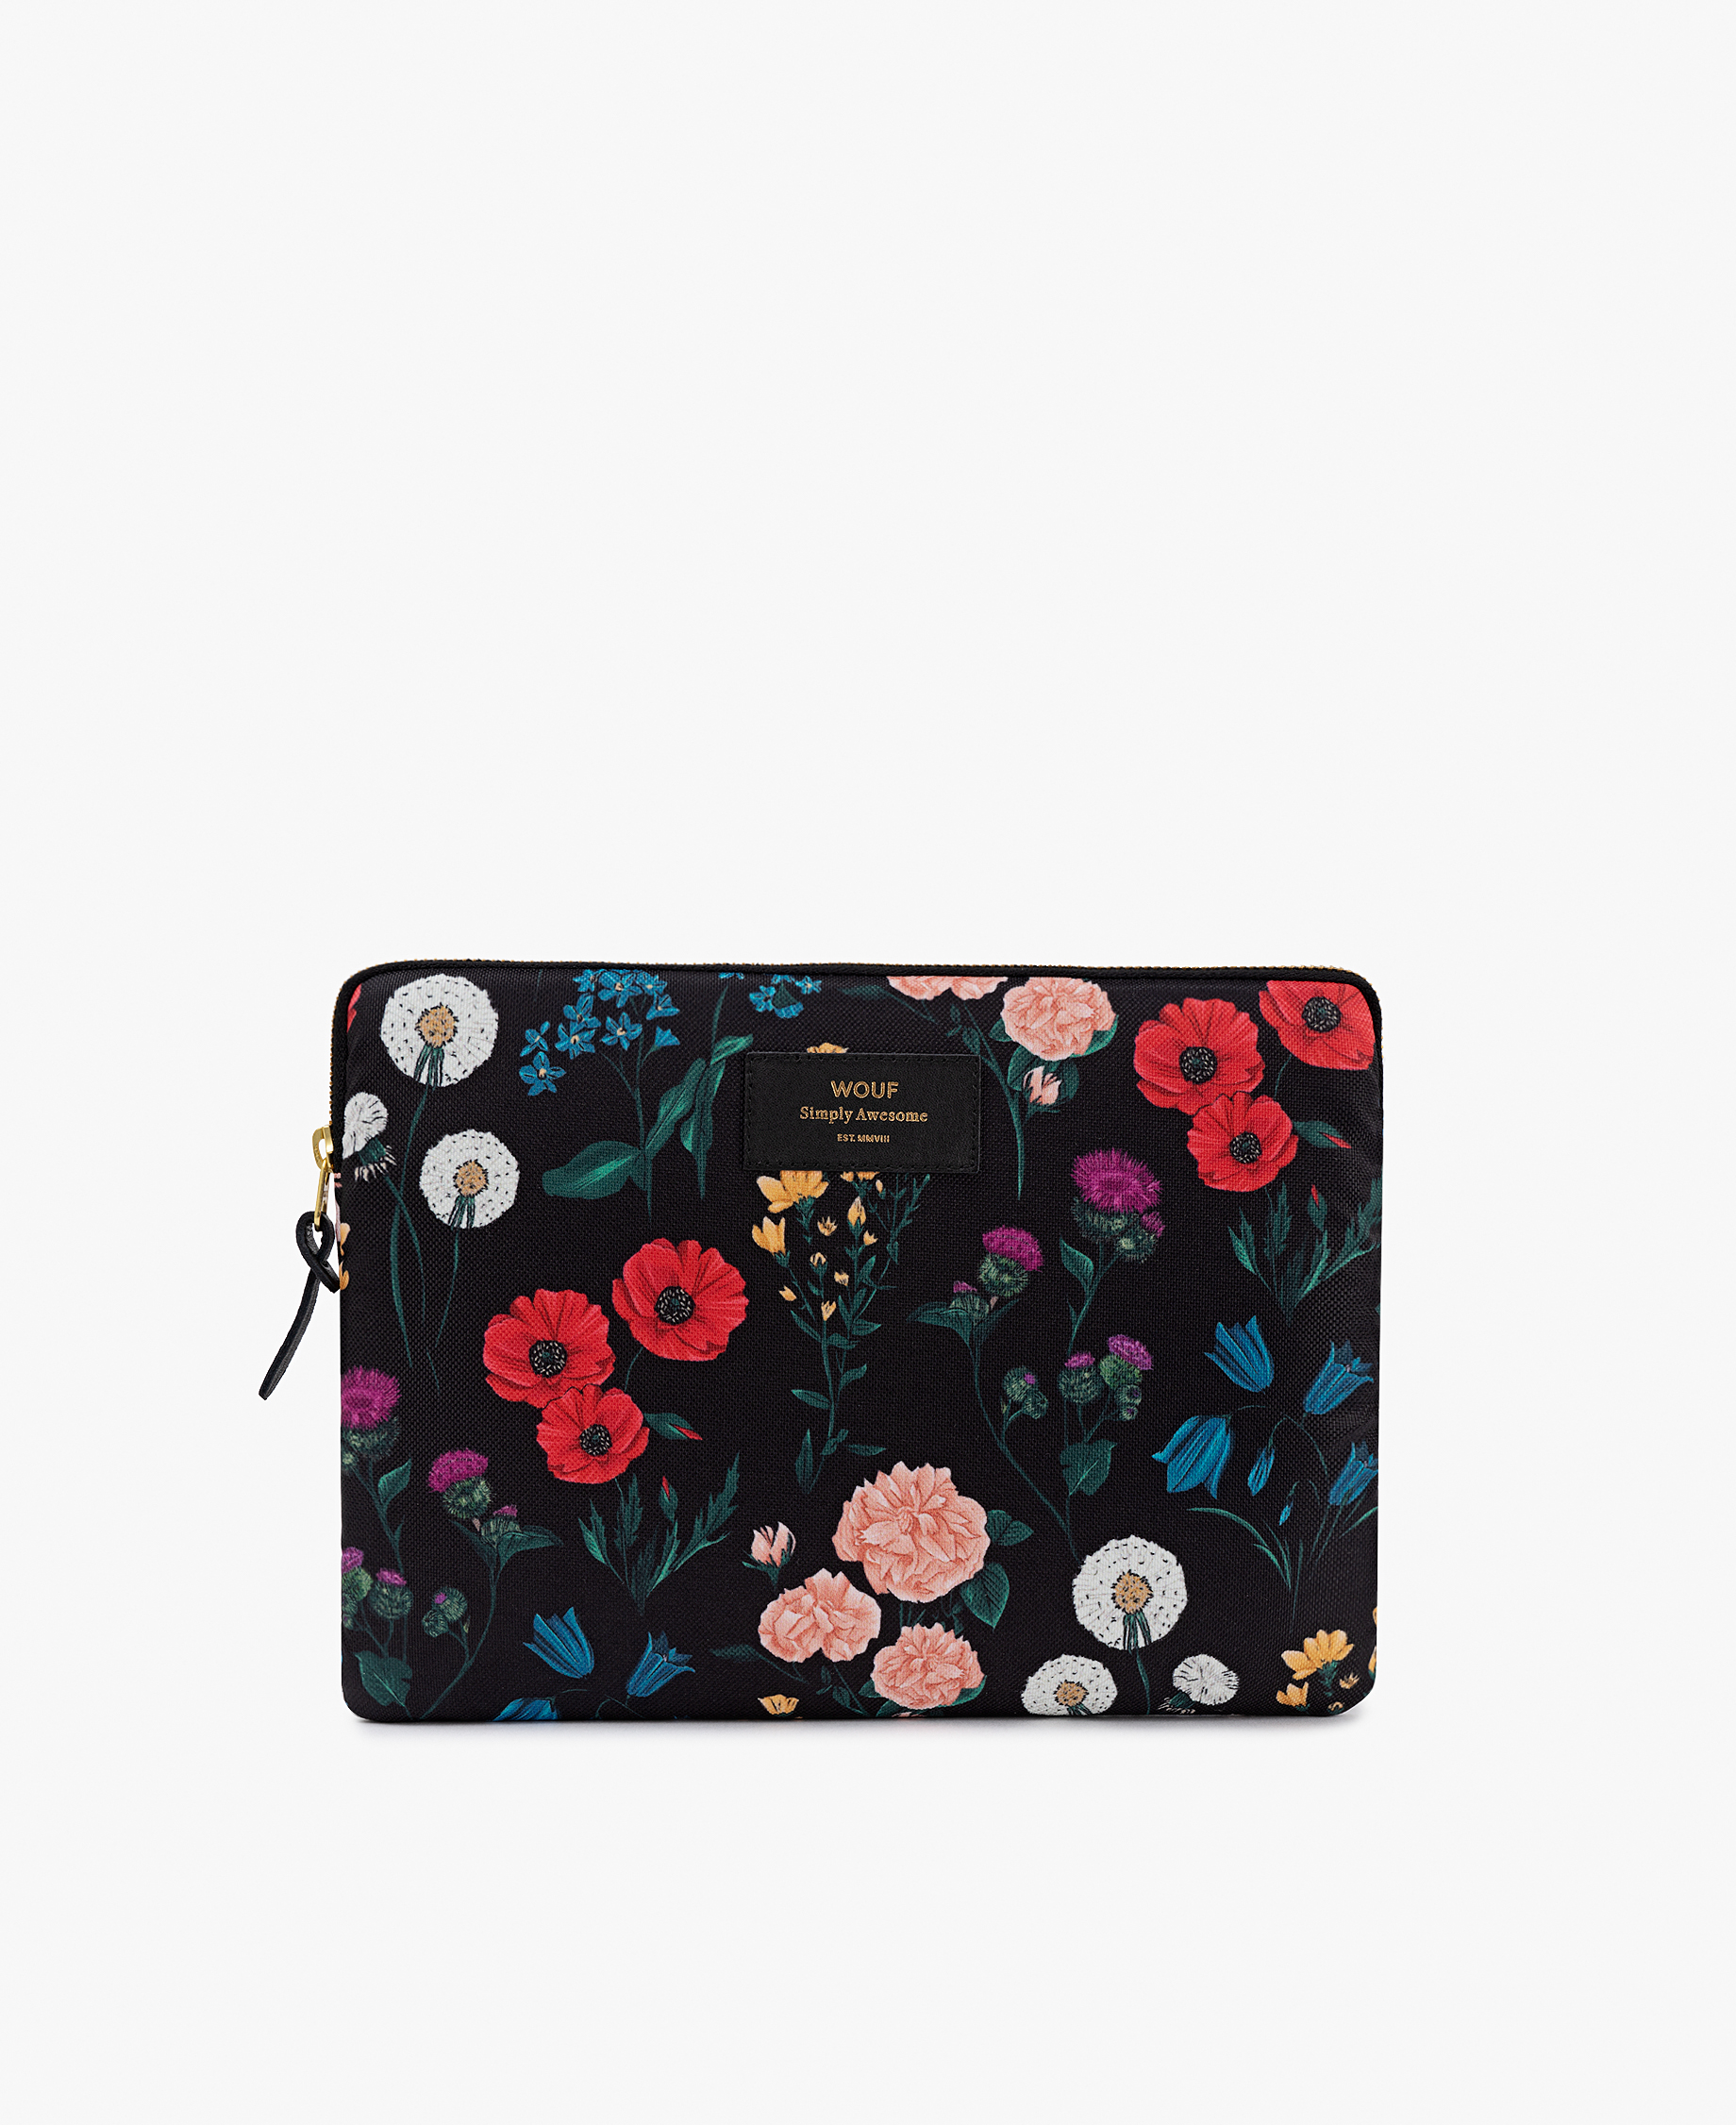 colorful-flowers-blossom-ipad-sleeve-wouf